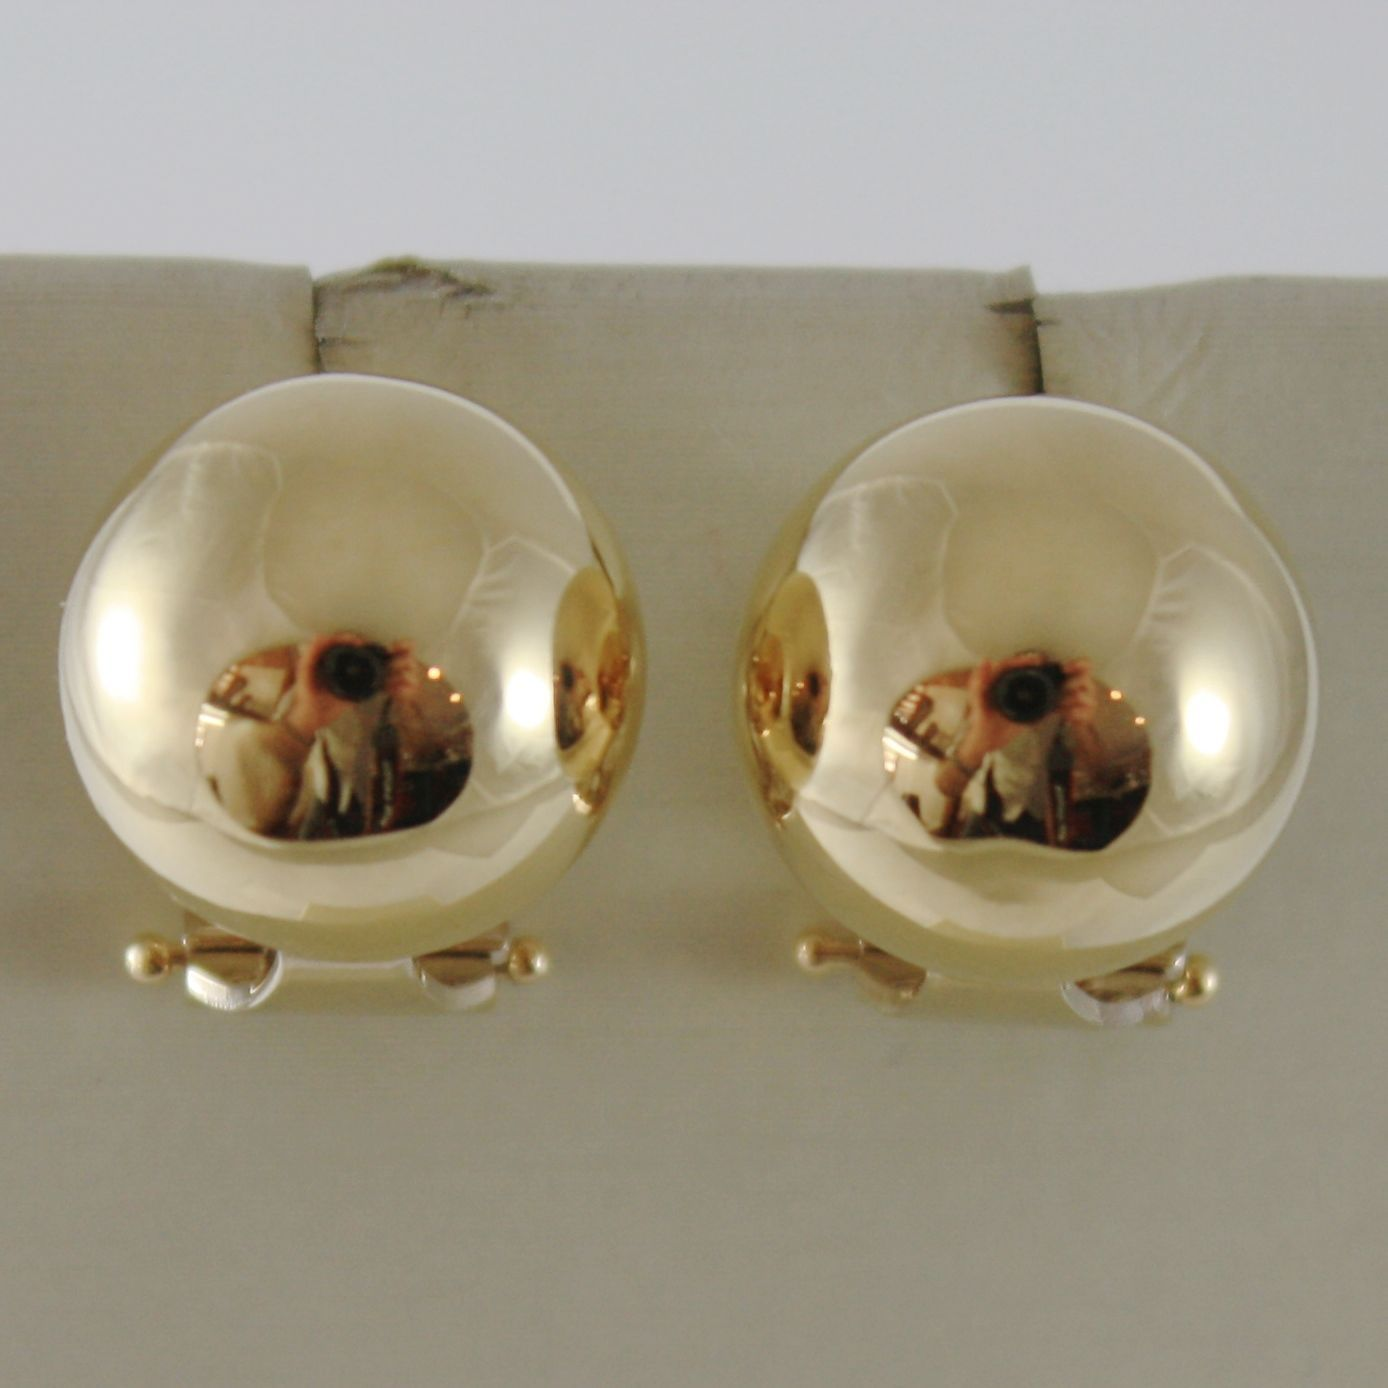 SOLID 18K YELLOW GOLD EARRINGS HALF BALL BALLS, 13 MM DIAMETER, MADE IN ITALY